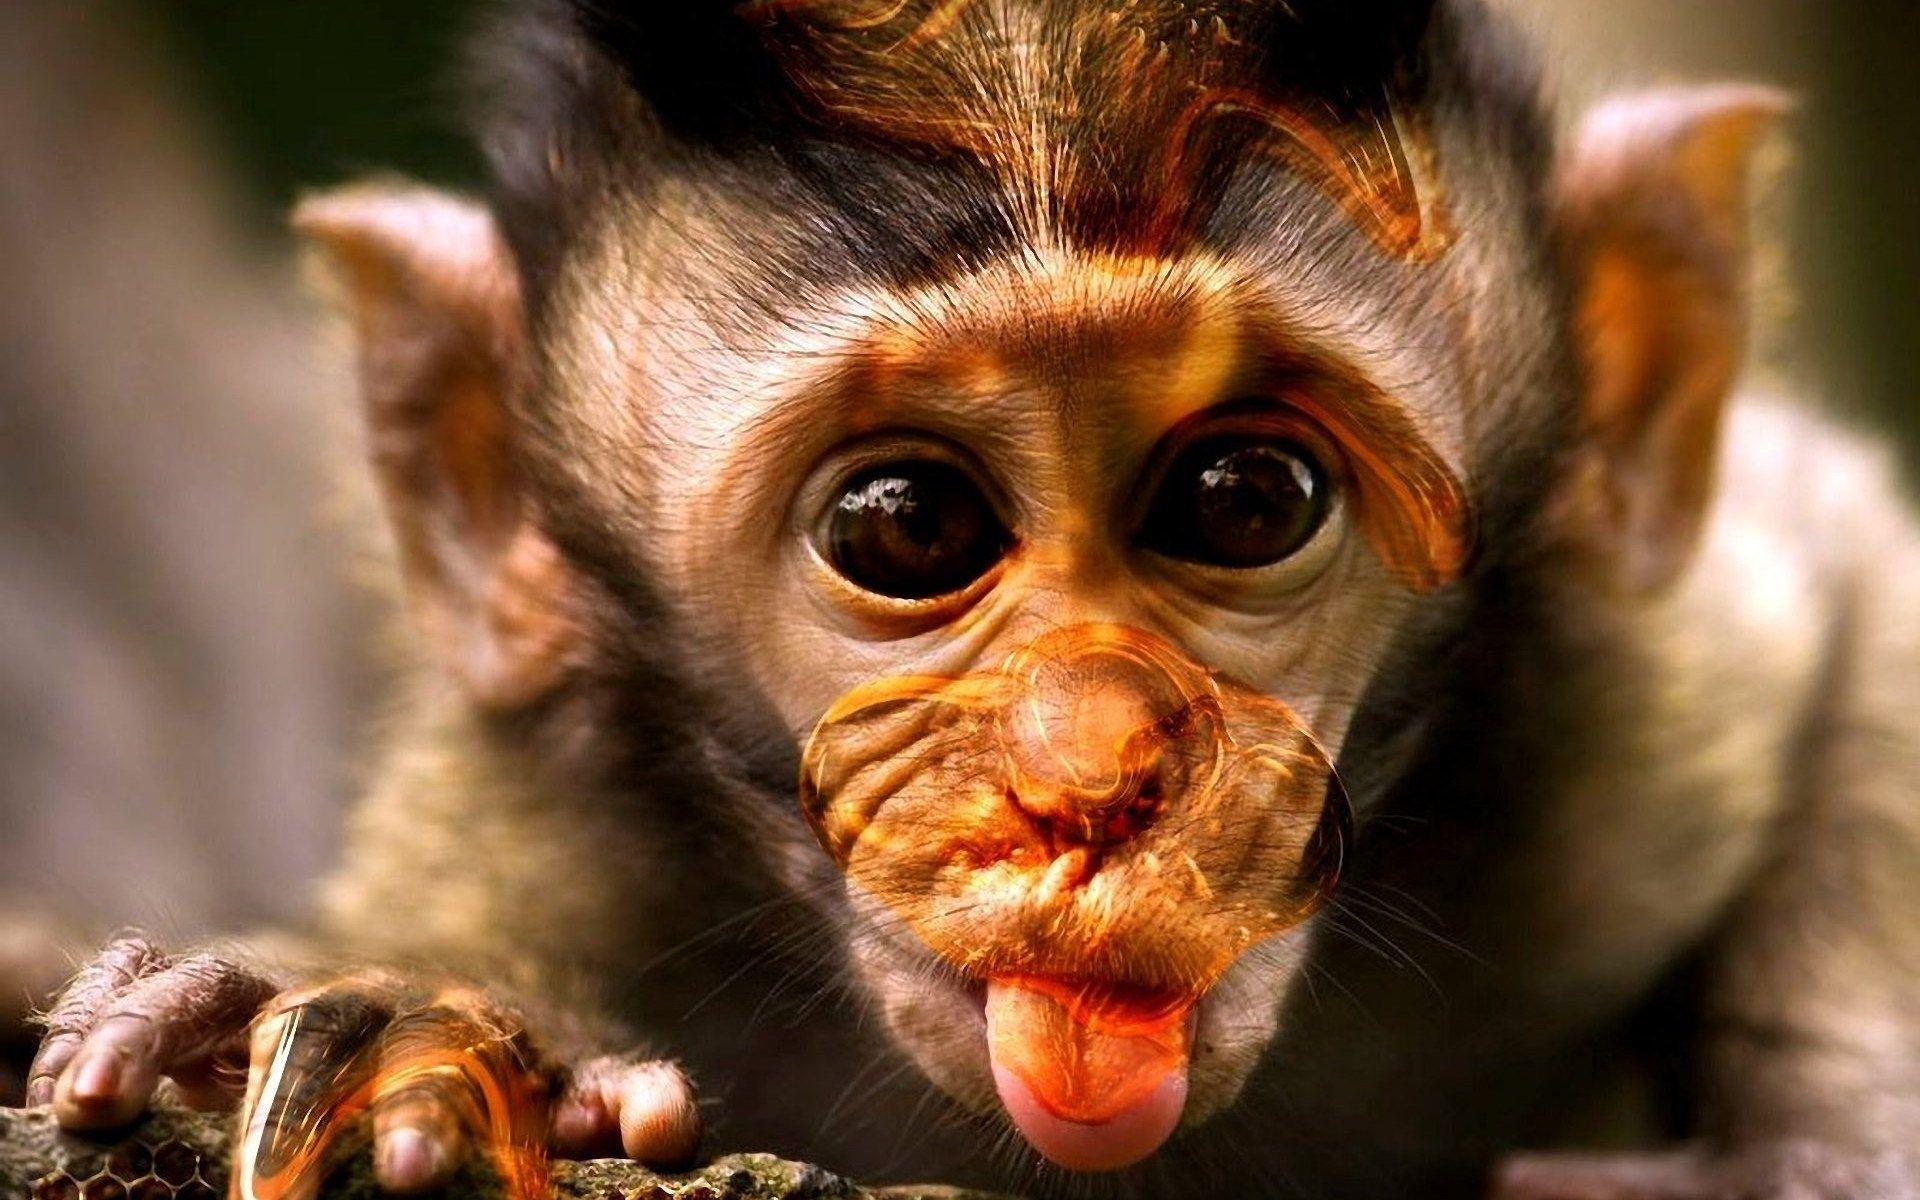 monkey wallpapers hd - wallpaper cave